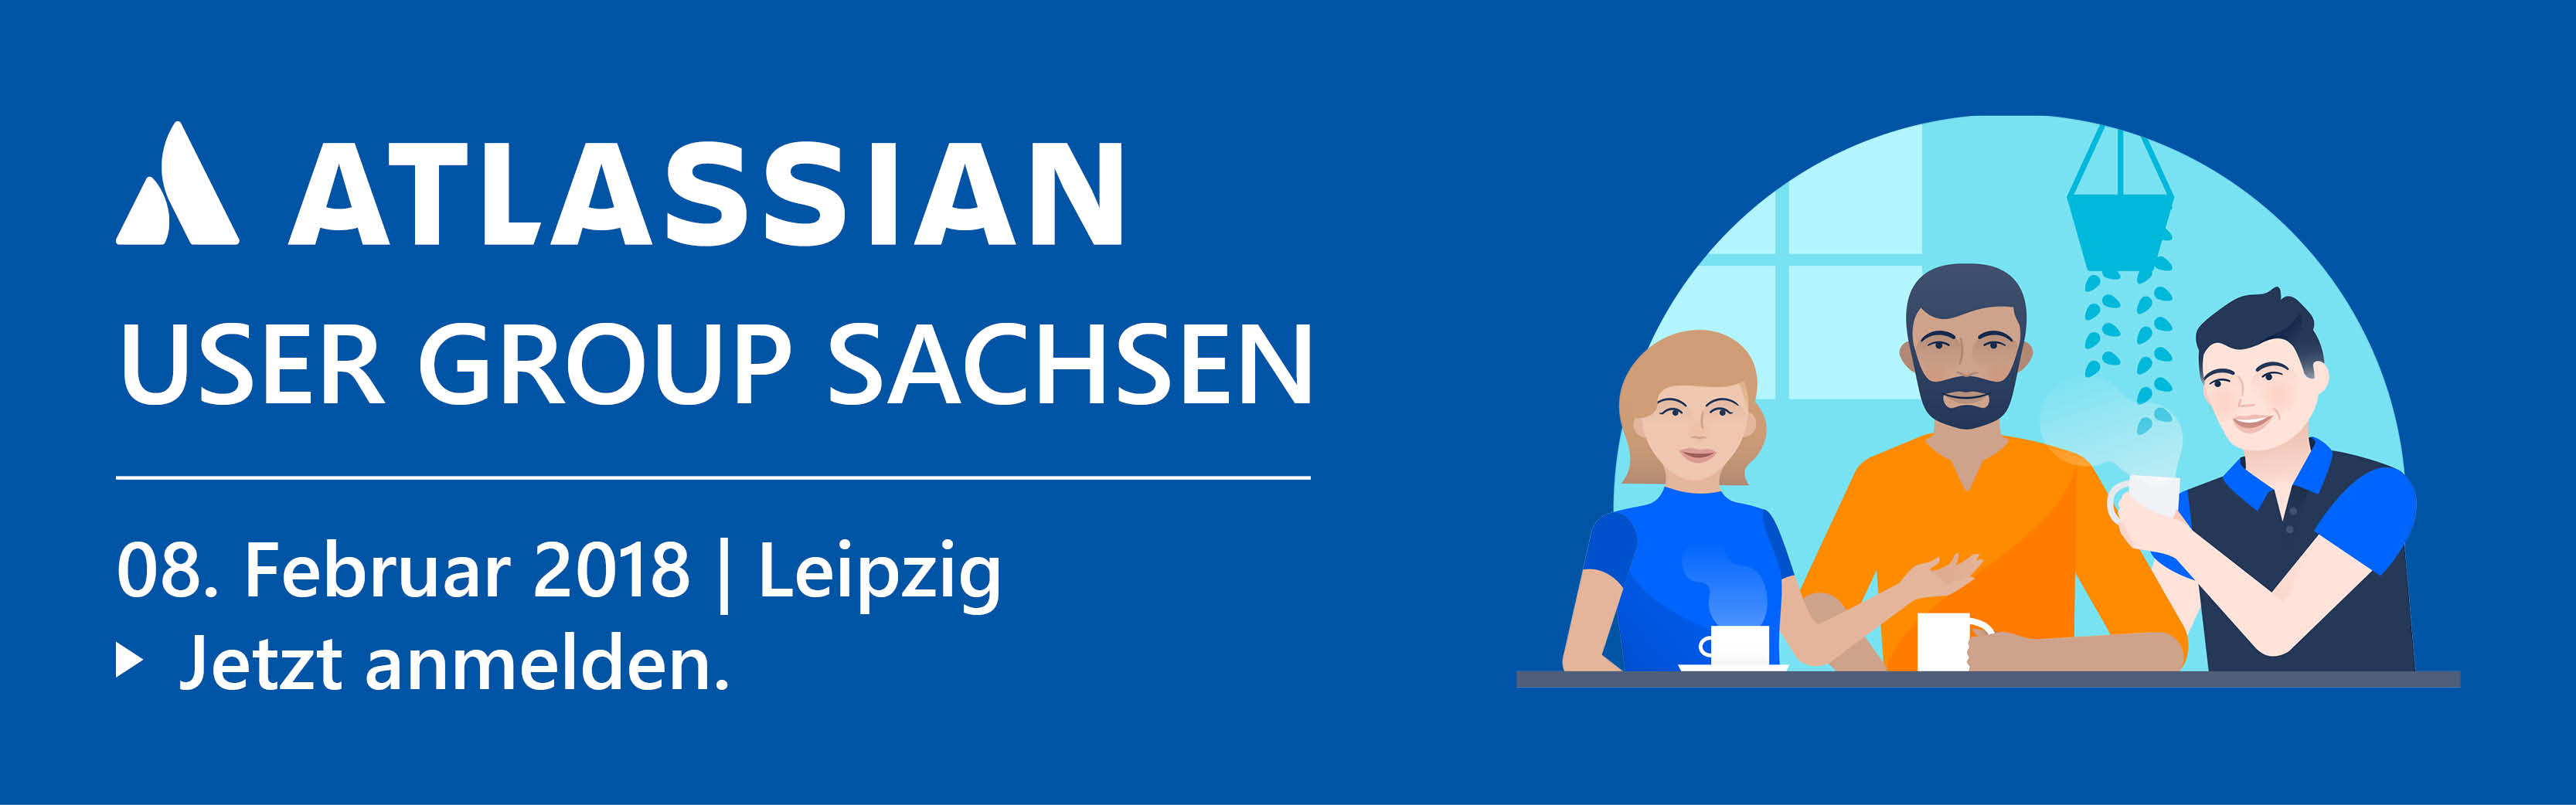 Atlassian User Group Sachsen